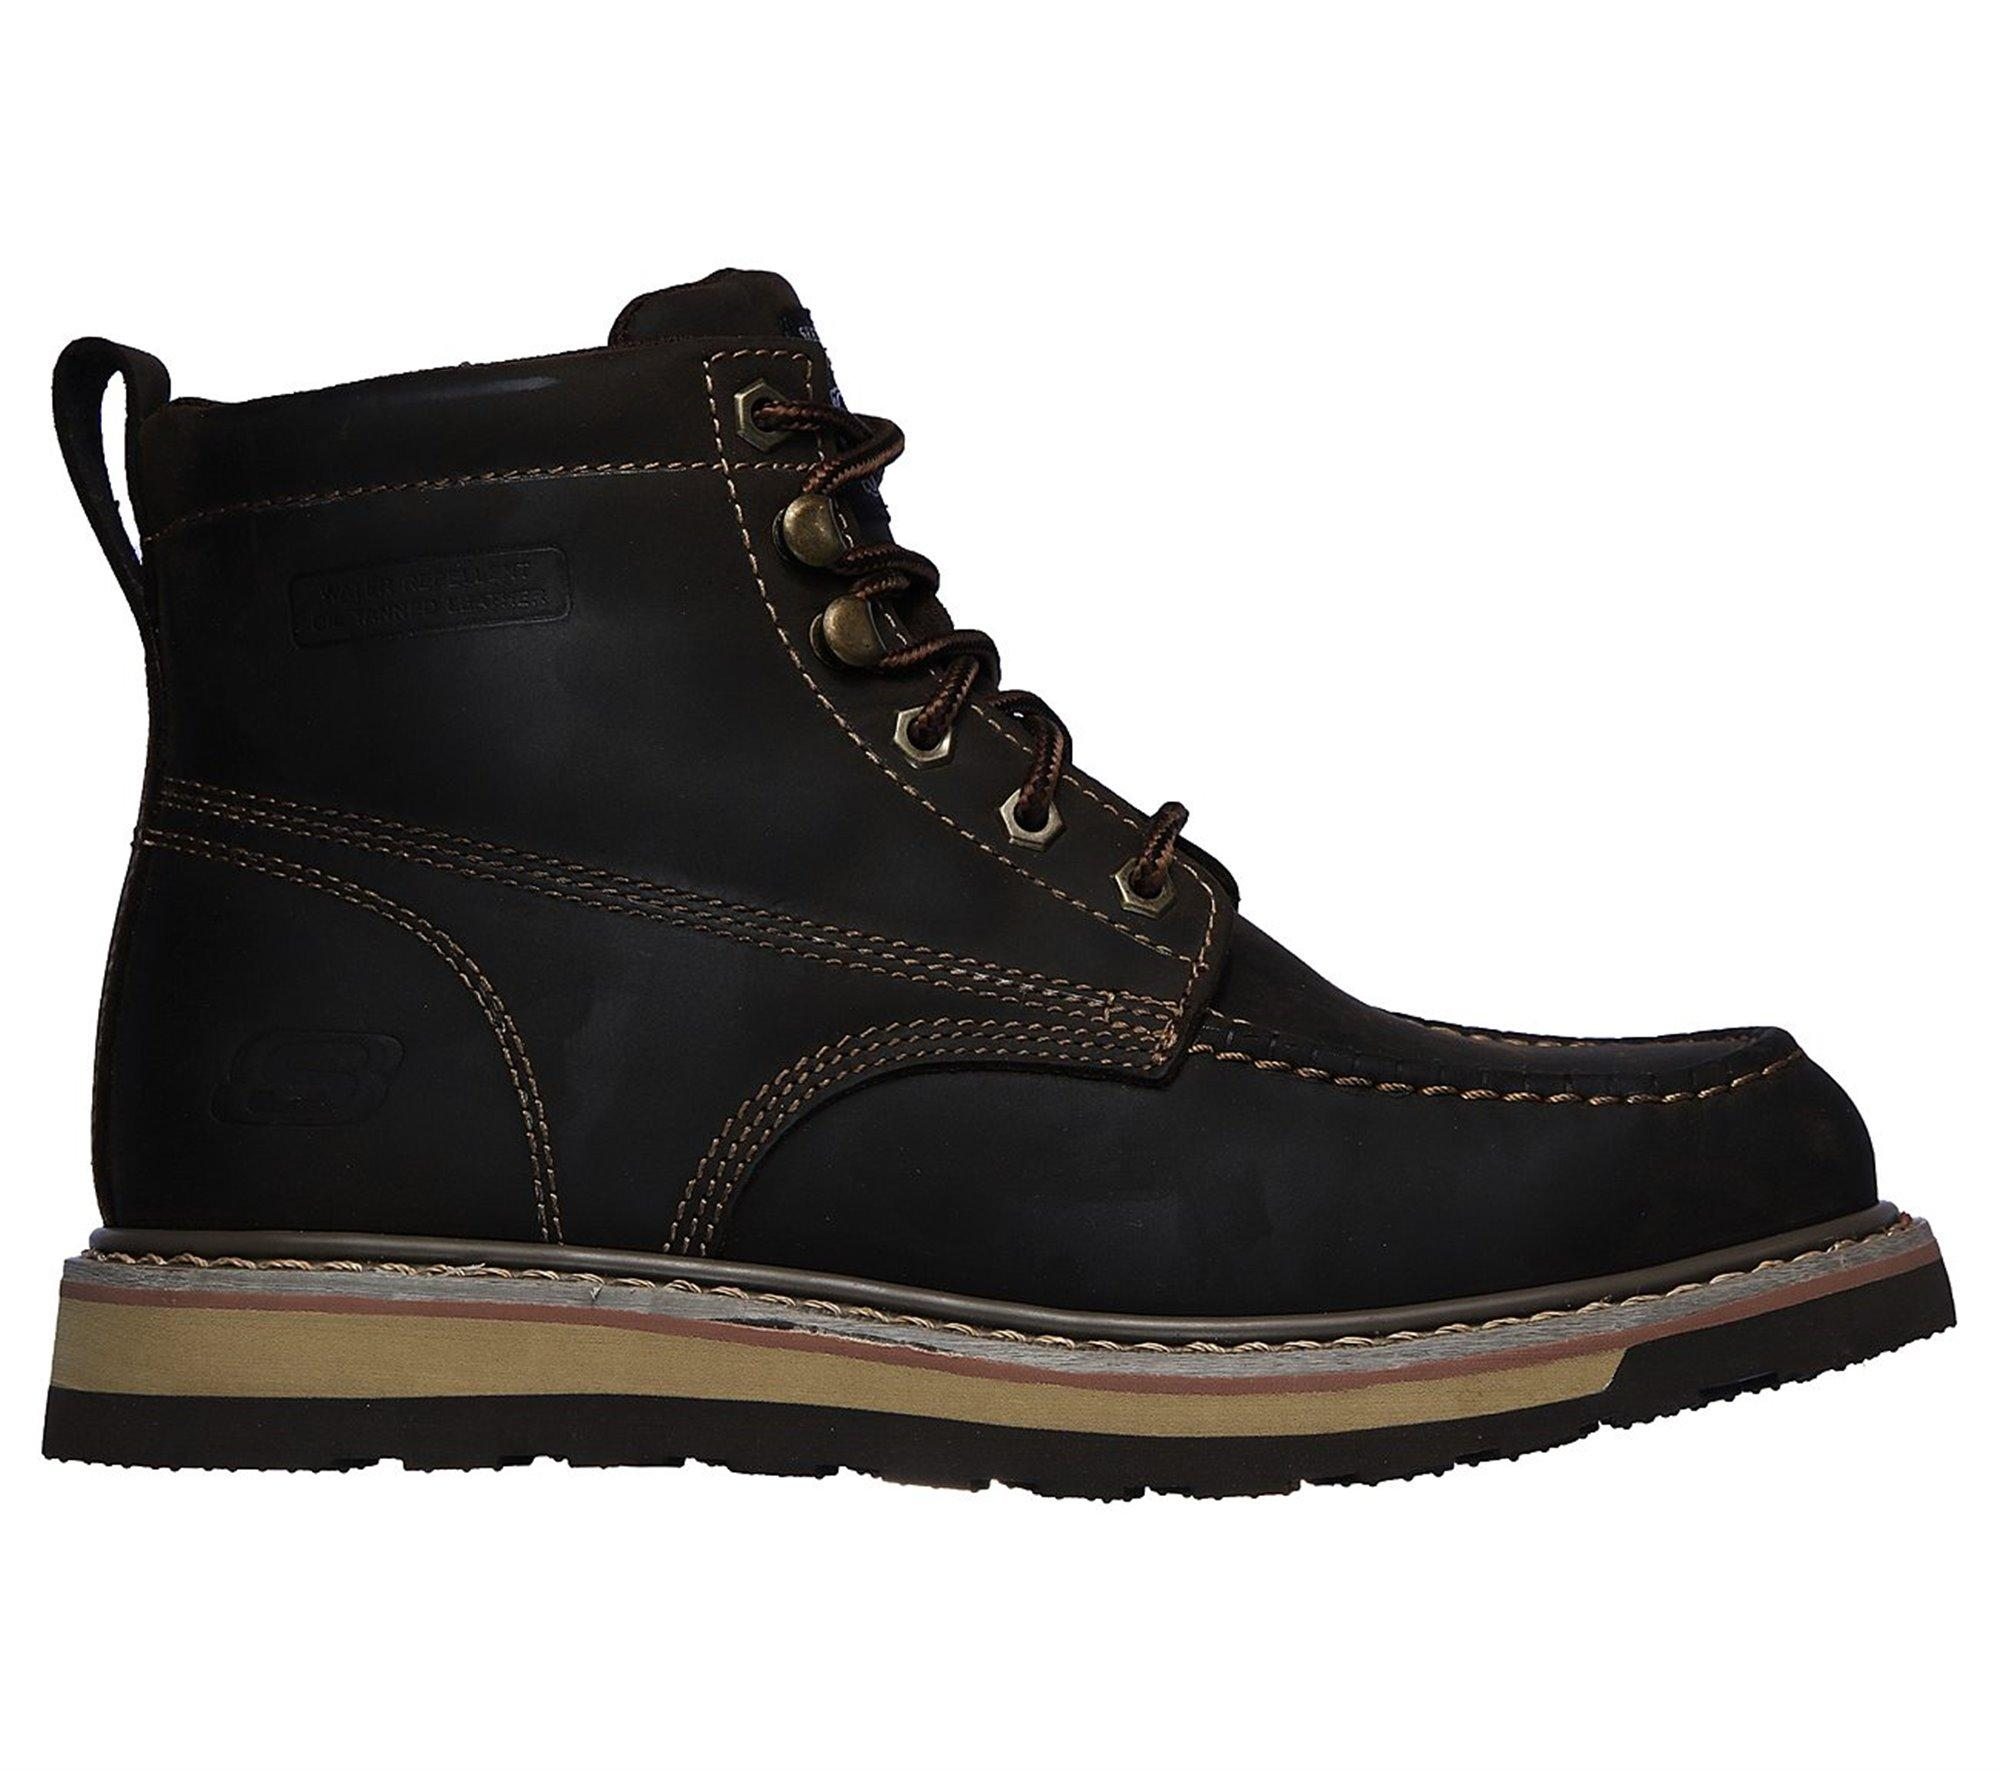 01e2ce873e7 Lyst - Skechers Work Relaxed Fit: Boydton in Brown for Men